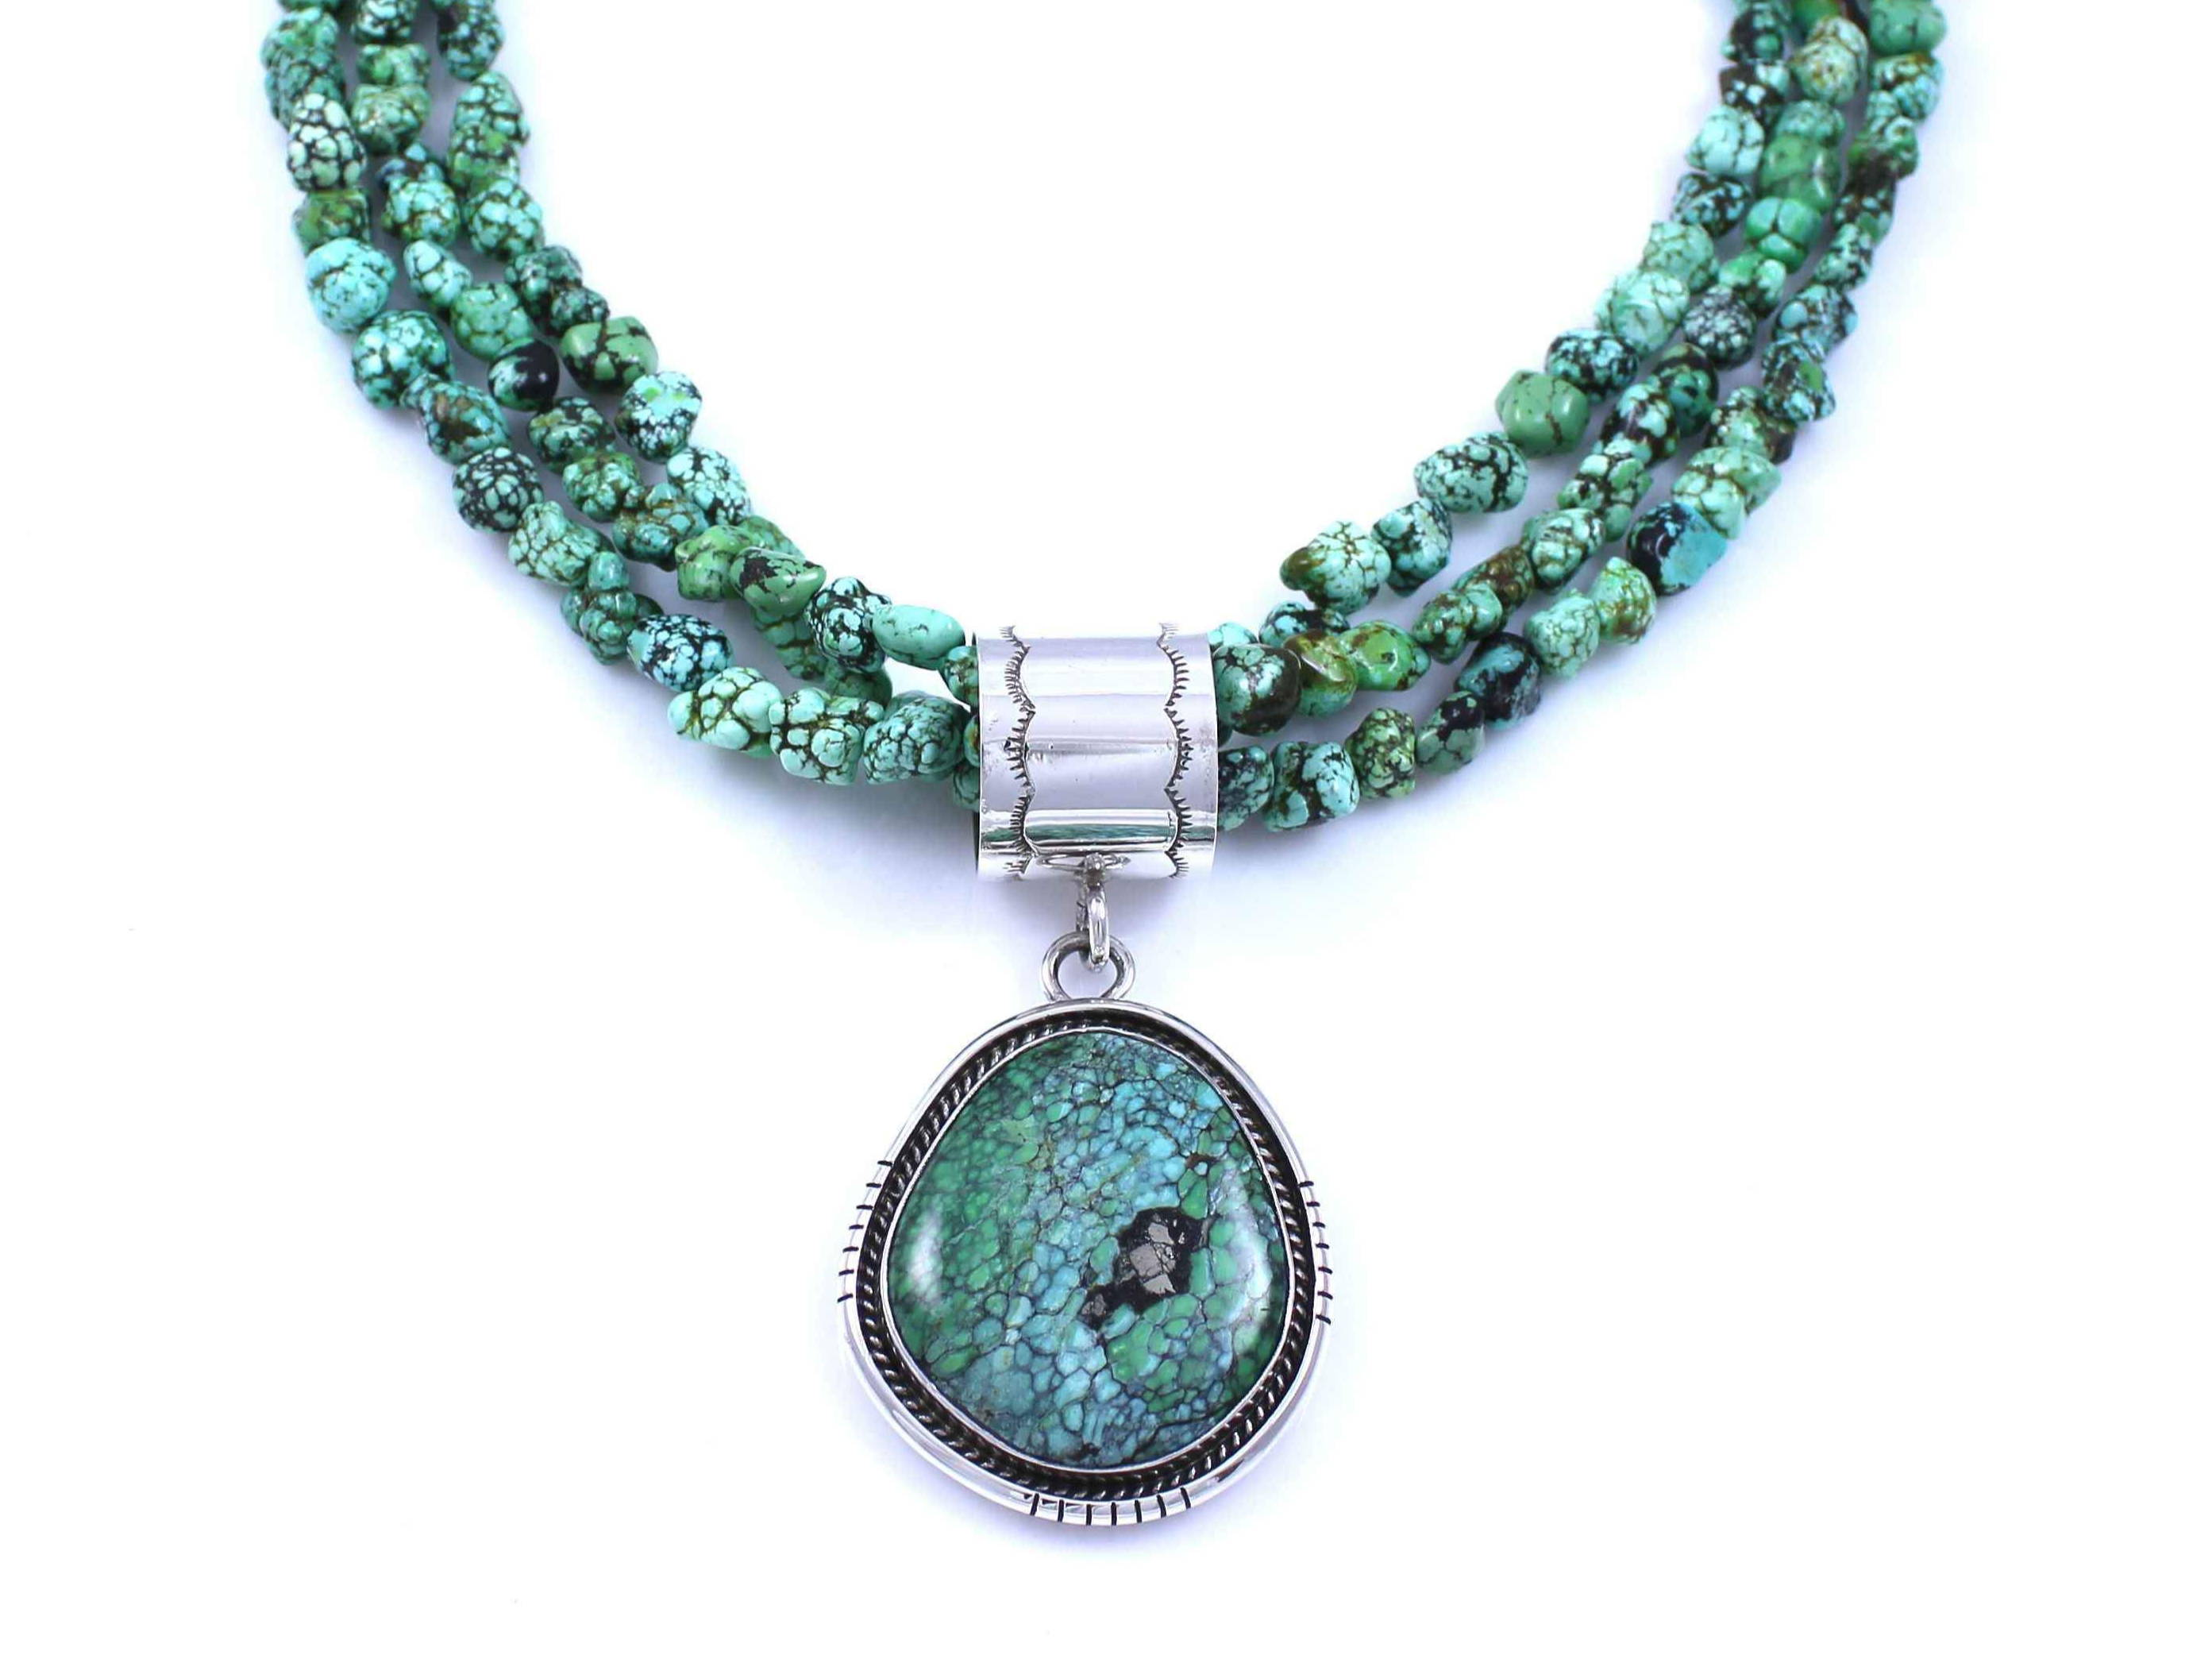 Victor Gabriel. Indian Jewelry. Native American Jewelry. Turquoise Jewelry. SWAIA Indian Market. Santa Fe Indian Market. Indian Market. Santa Fe Art Gallery. Sorrel Sky. Indian Market Events.